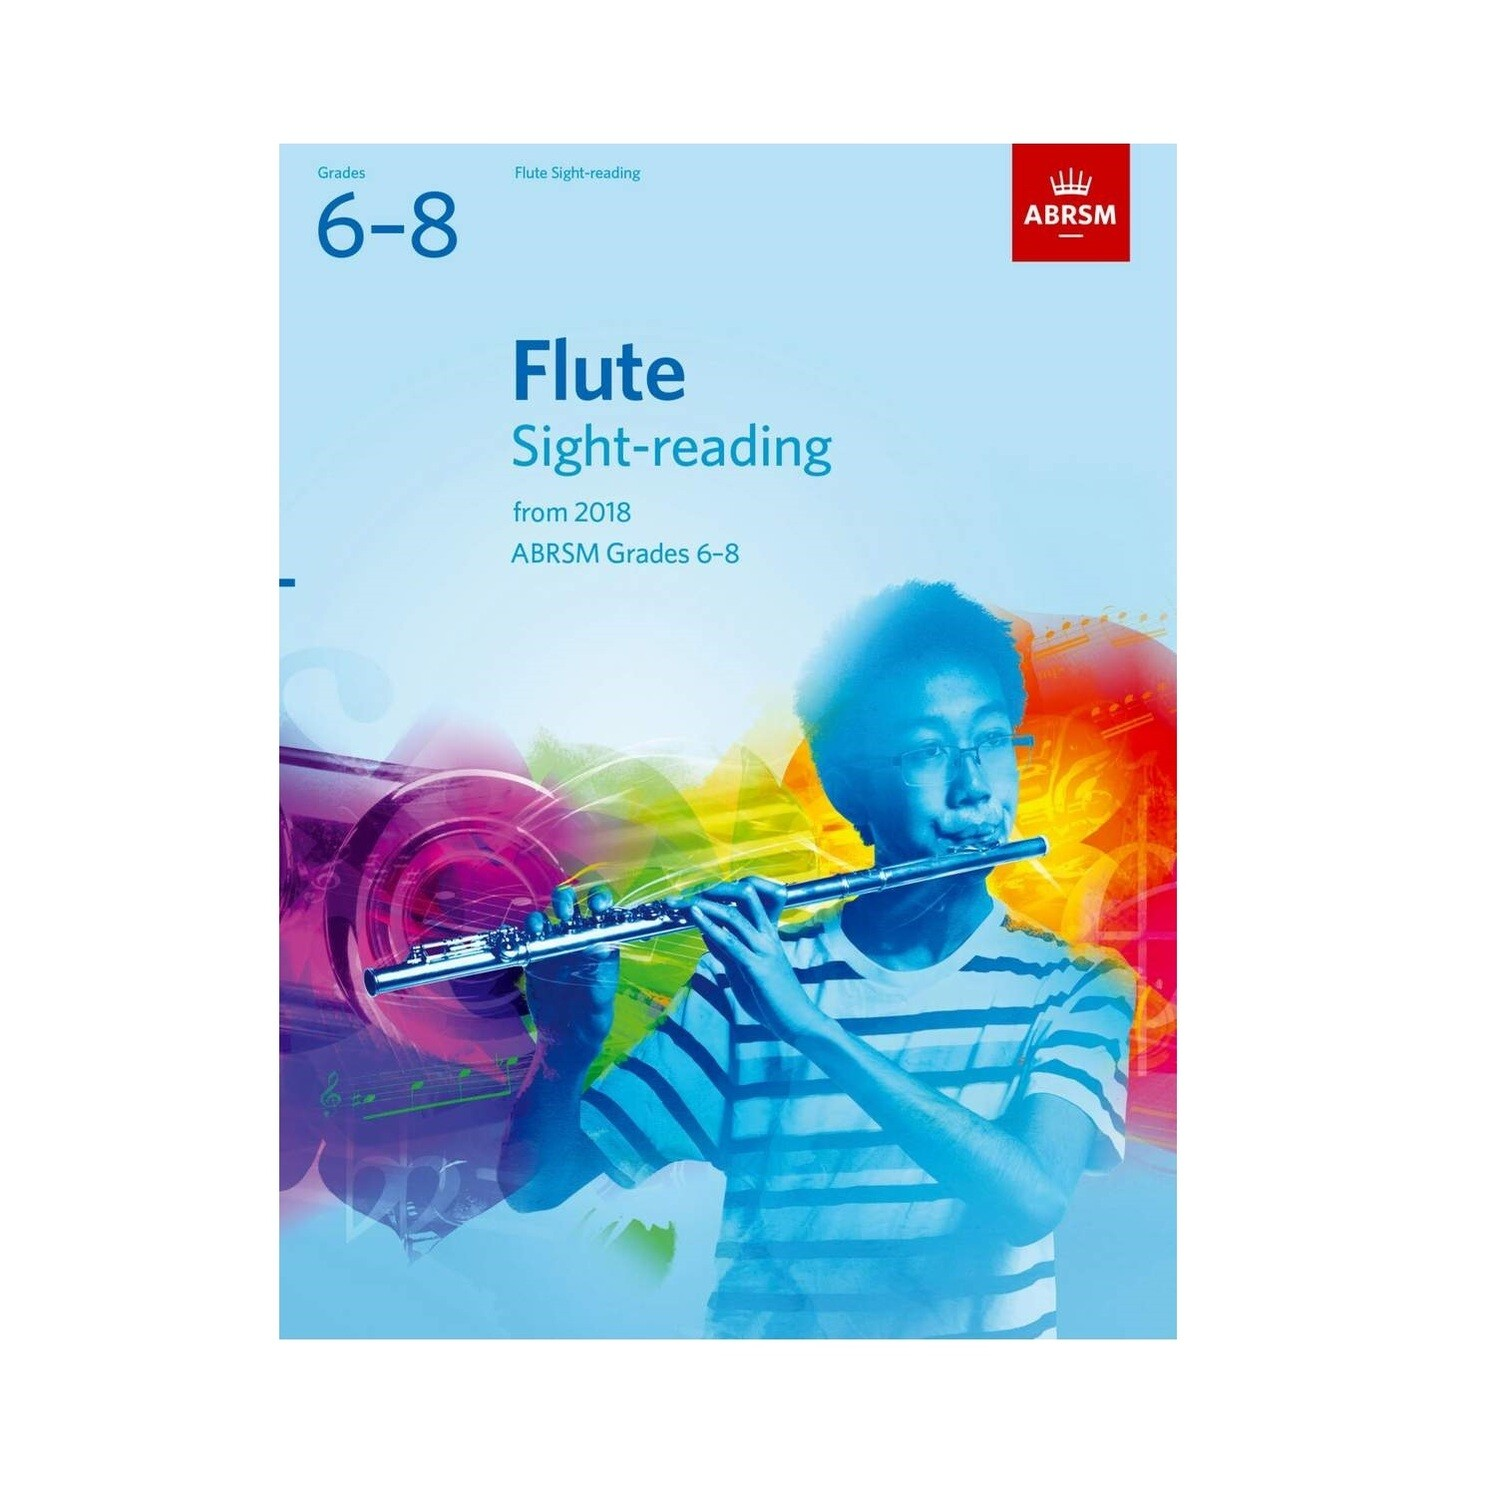 ABRSM Flute Sight-Reading Tests Grades 6-8 (From 2018)